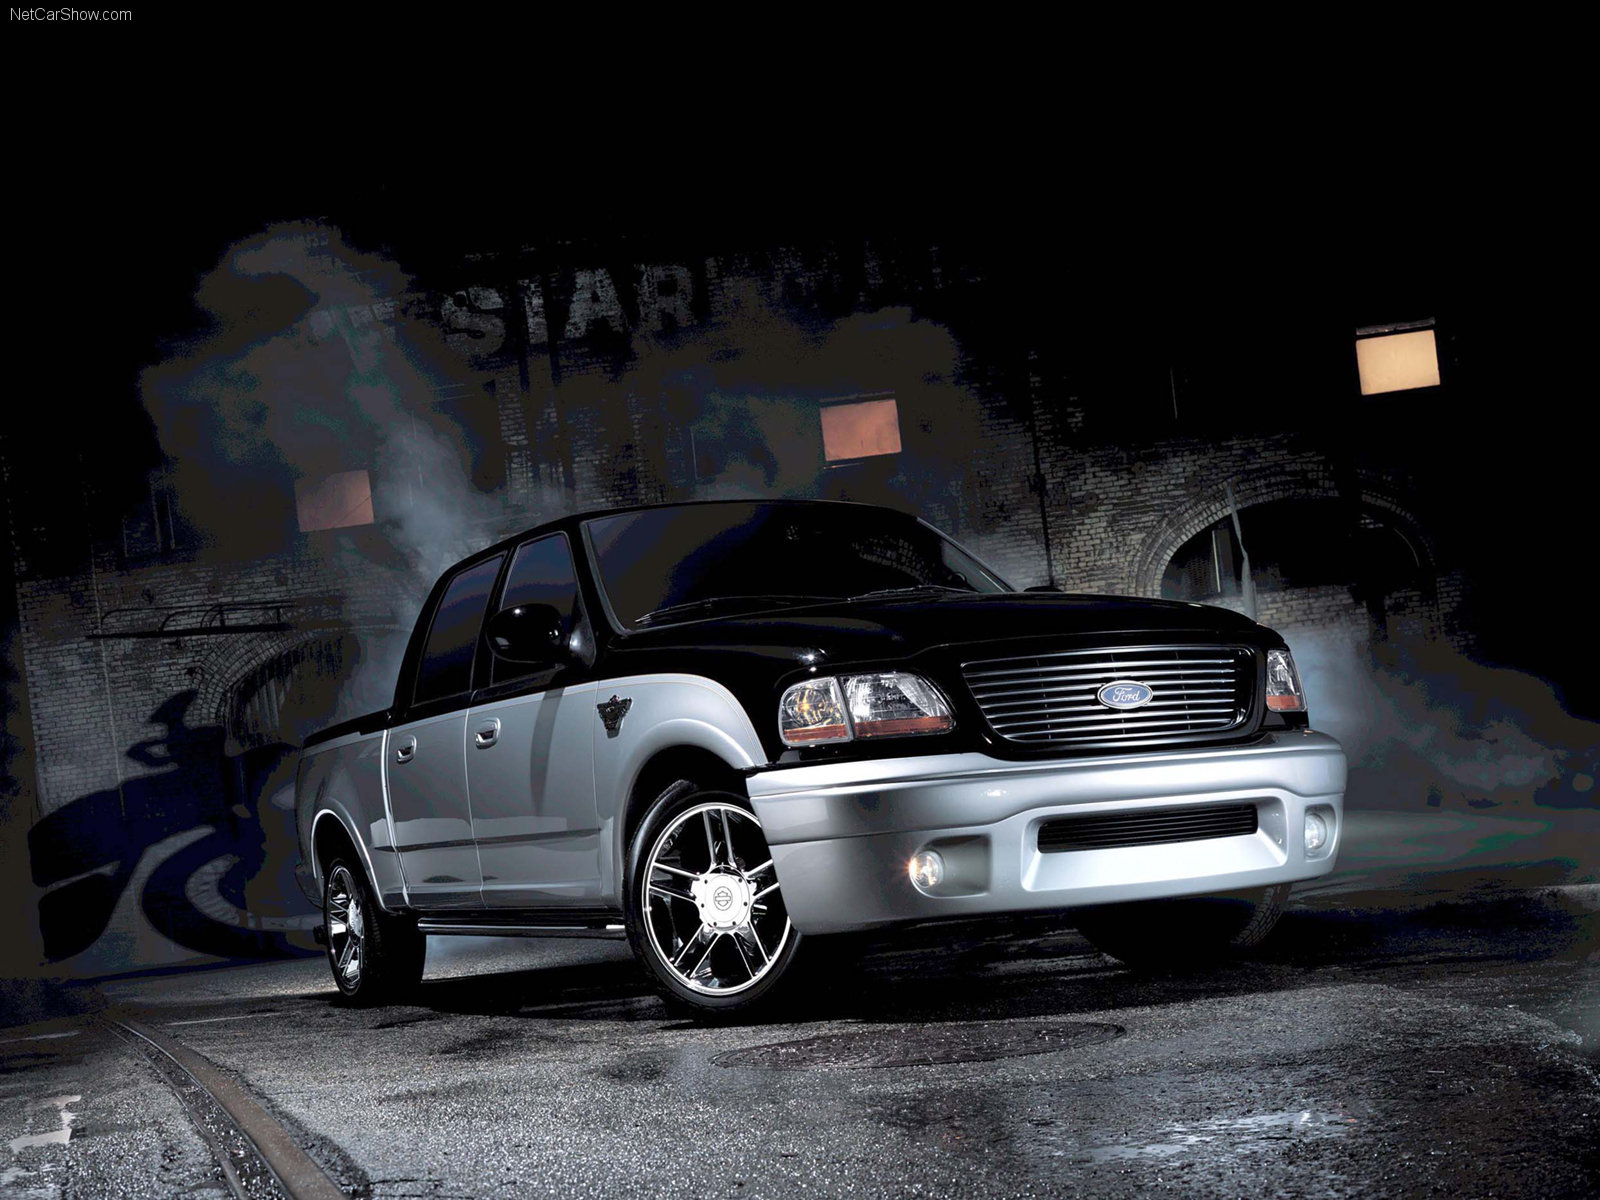 Ford F-150 picture # 33169 | Ford photo gallery | CarsBase.com